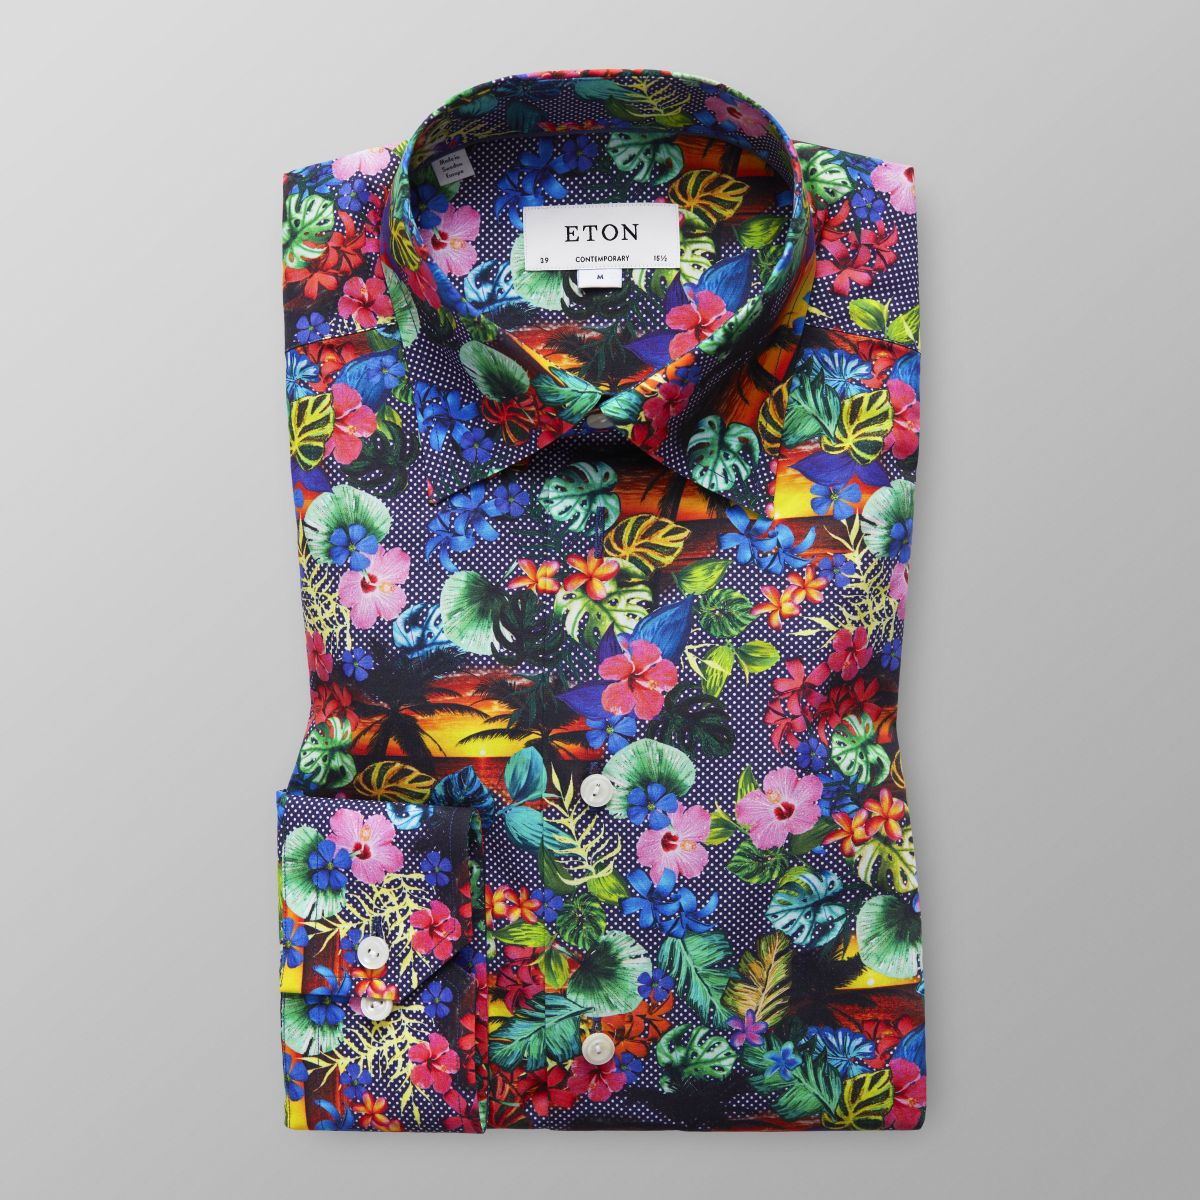 Discount Extremely Classic fit Blue Azulejo Print Shirt Eton Buy Cheap Best Store To Get New Arrival For Sale Clearance Best Sale 4vovh